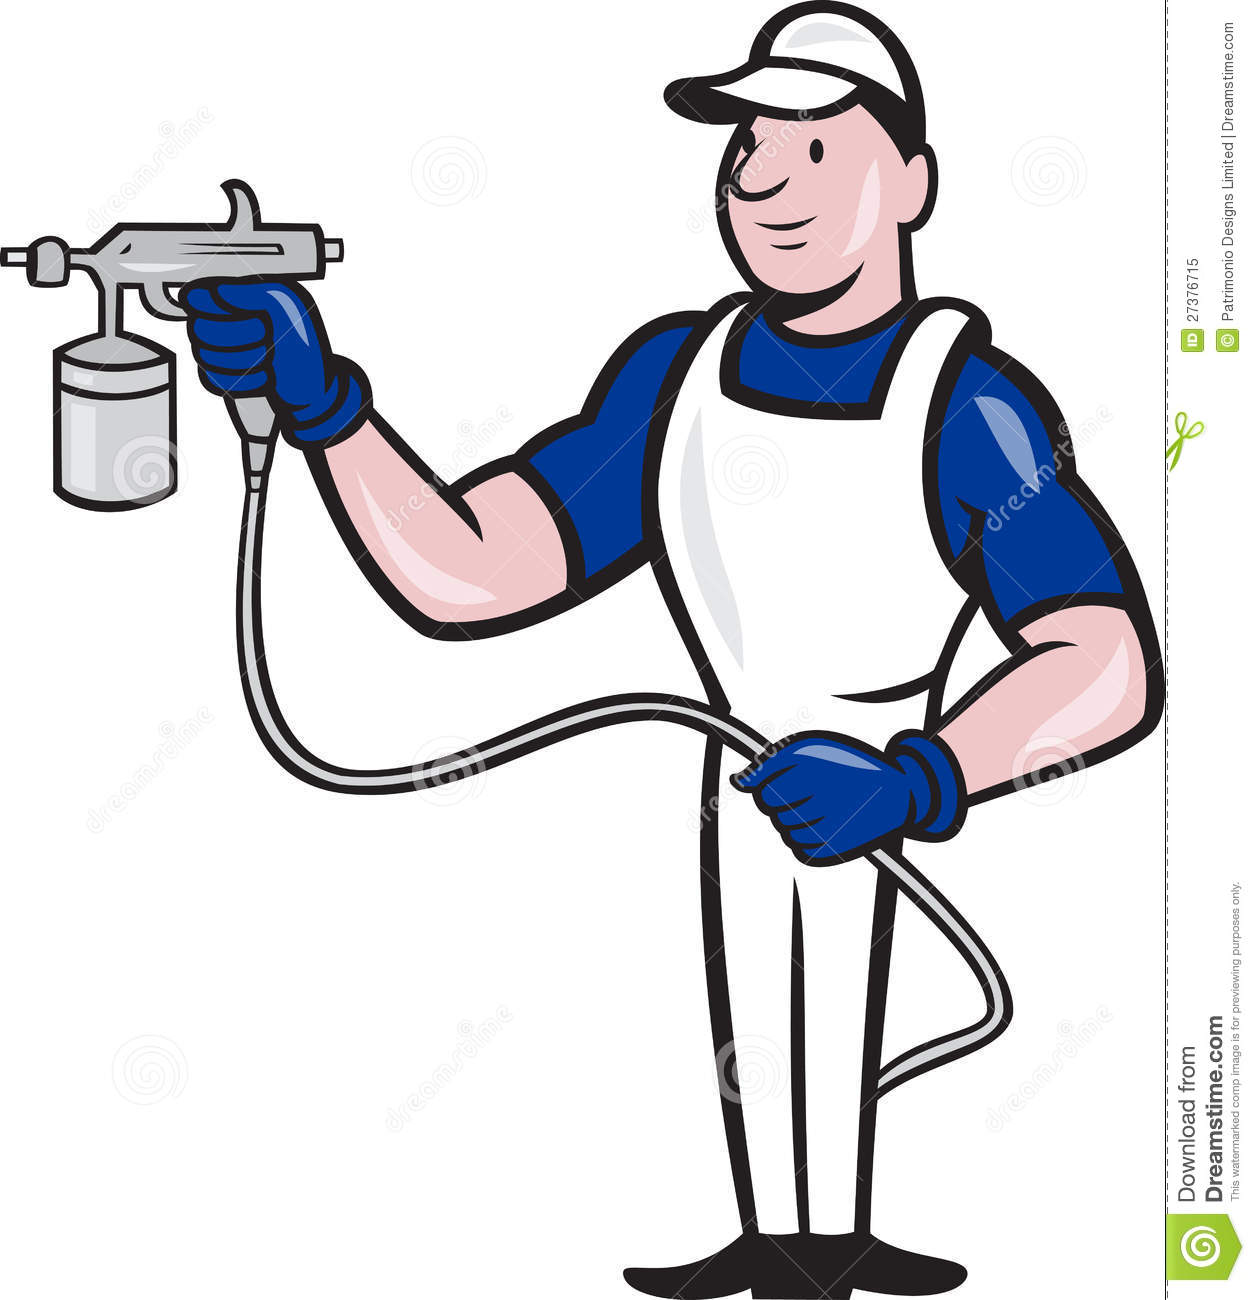 Spray Painter Spraying Gun Cartoon Stock Vector